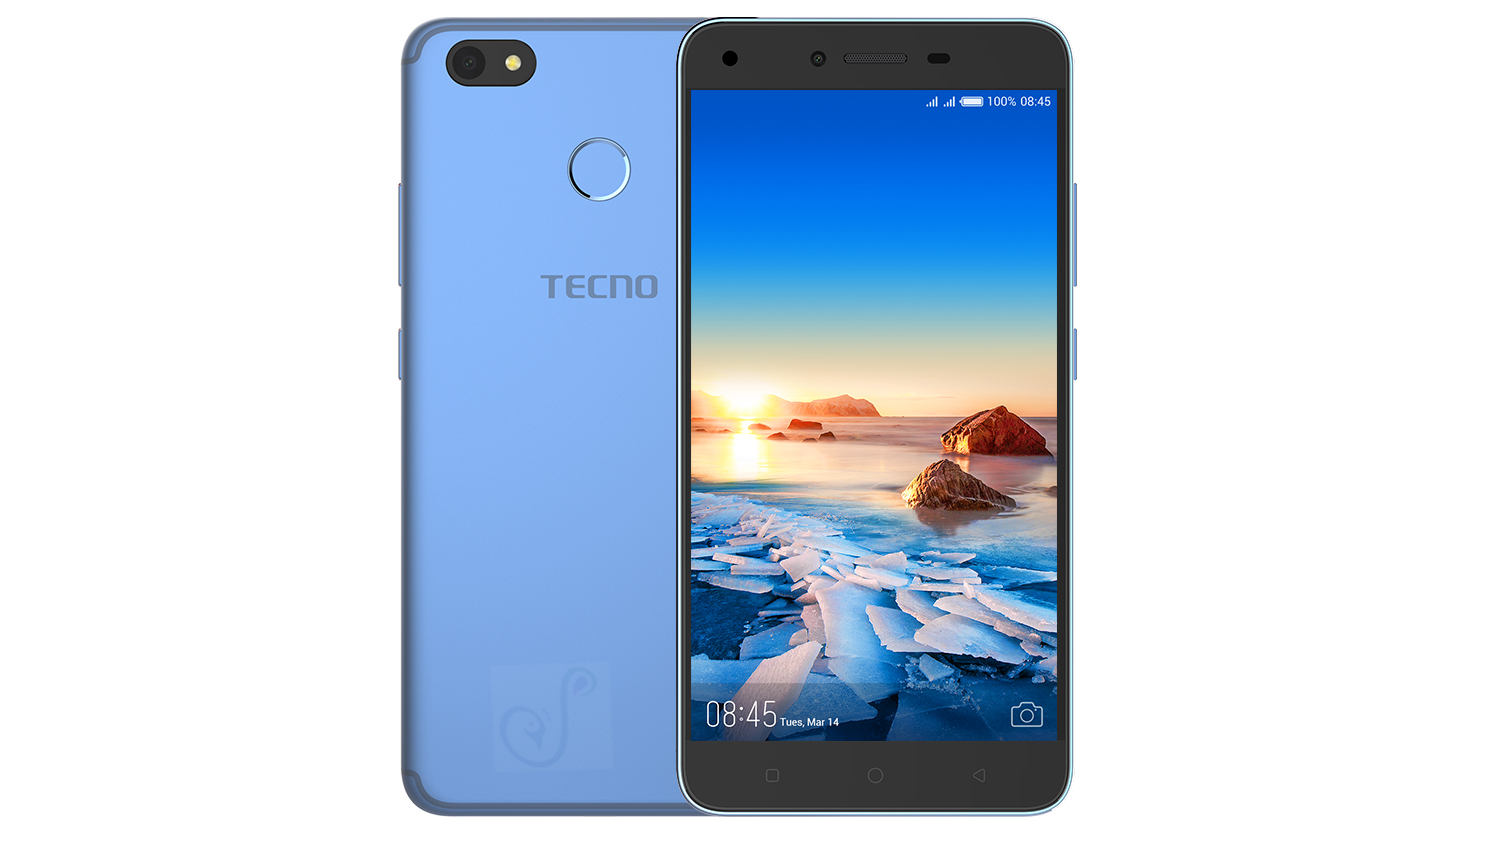 [How to Guide] Install Stock Firmware on Tecno Spark CM